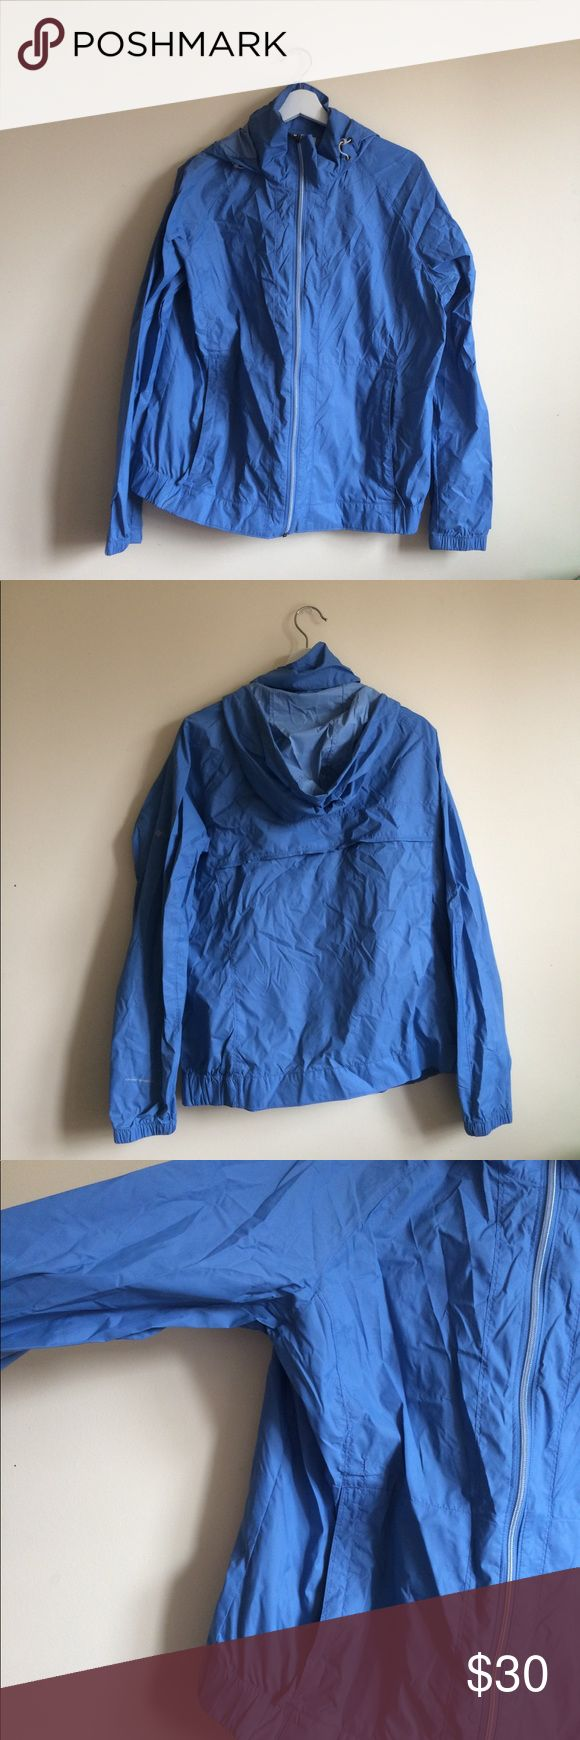 SALE Columbia Lightweight Rain Jacket Brand: Columbia Garment: Lightweight packable rain jacket Size: XL Fit: TTS Details: In amazing condition  Shop information: Hello! I'm Rebecca, a college student near Seattle. All items ship in 1-2 days. I am flexible on price and will likely accept a *reasonable* offer. Have a great day! Columbia Jackets & Coats